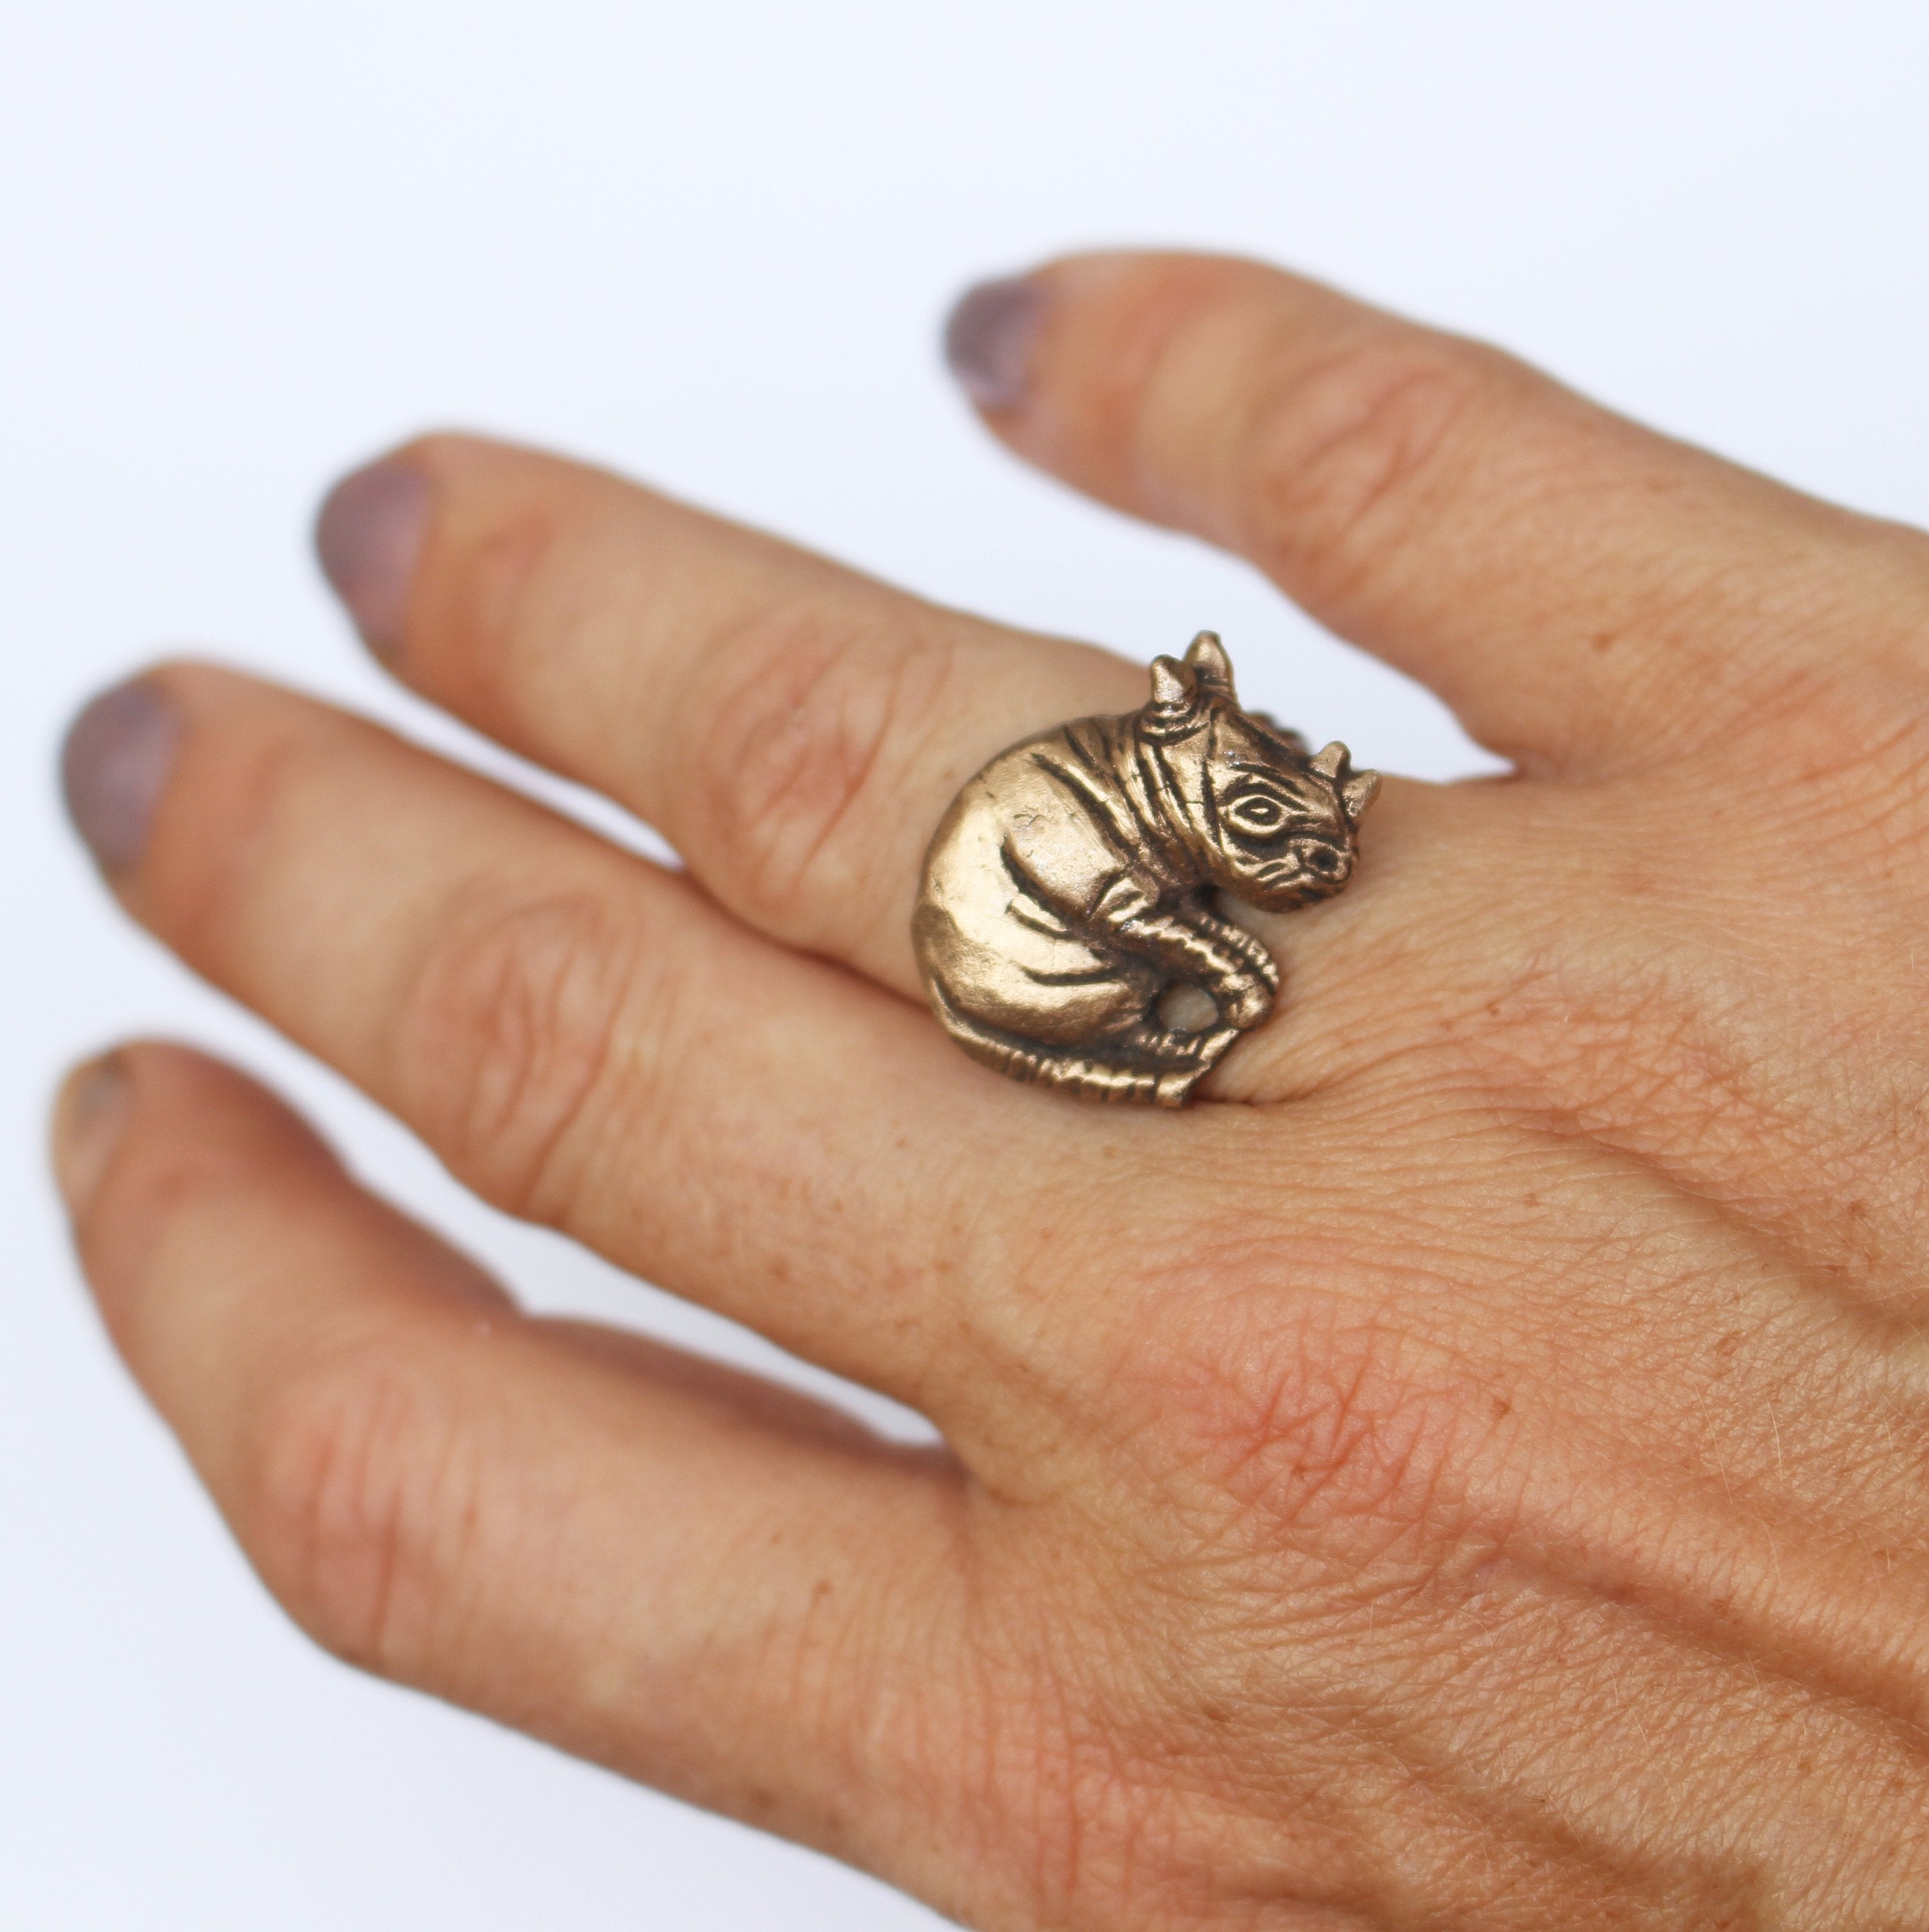 Rhinoceros ring